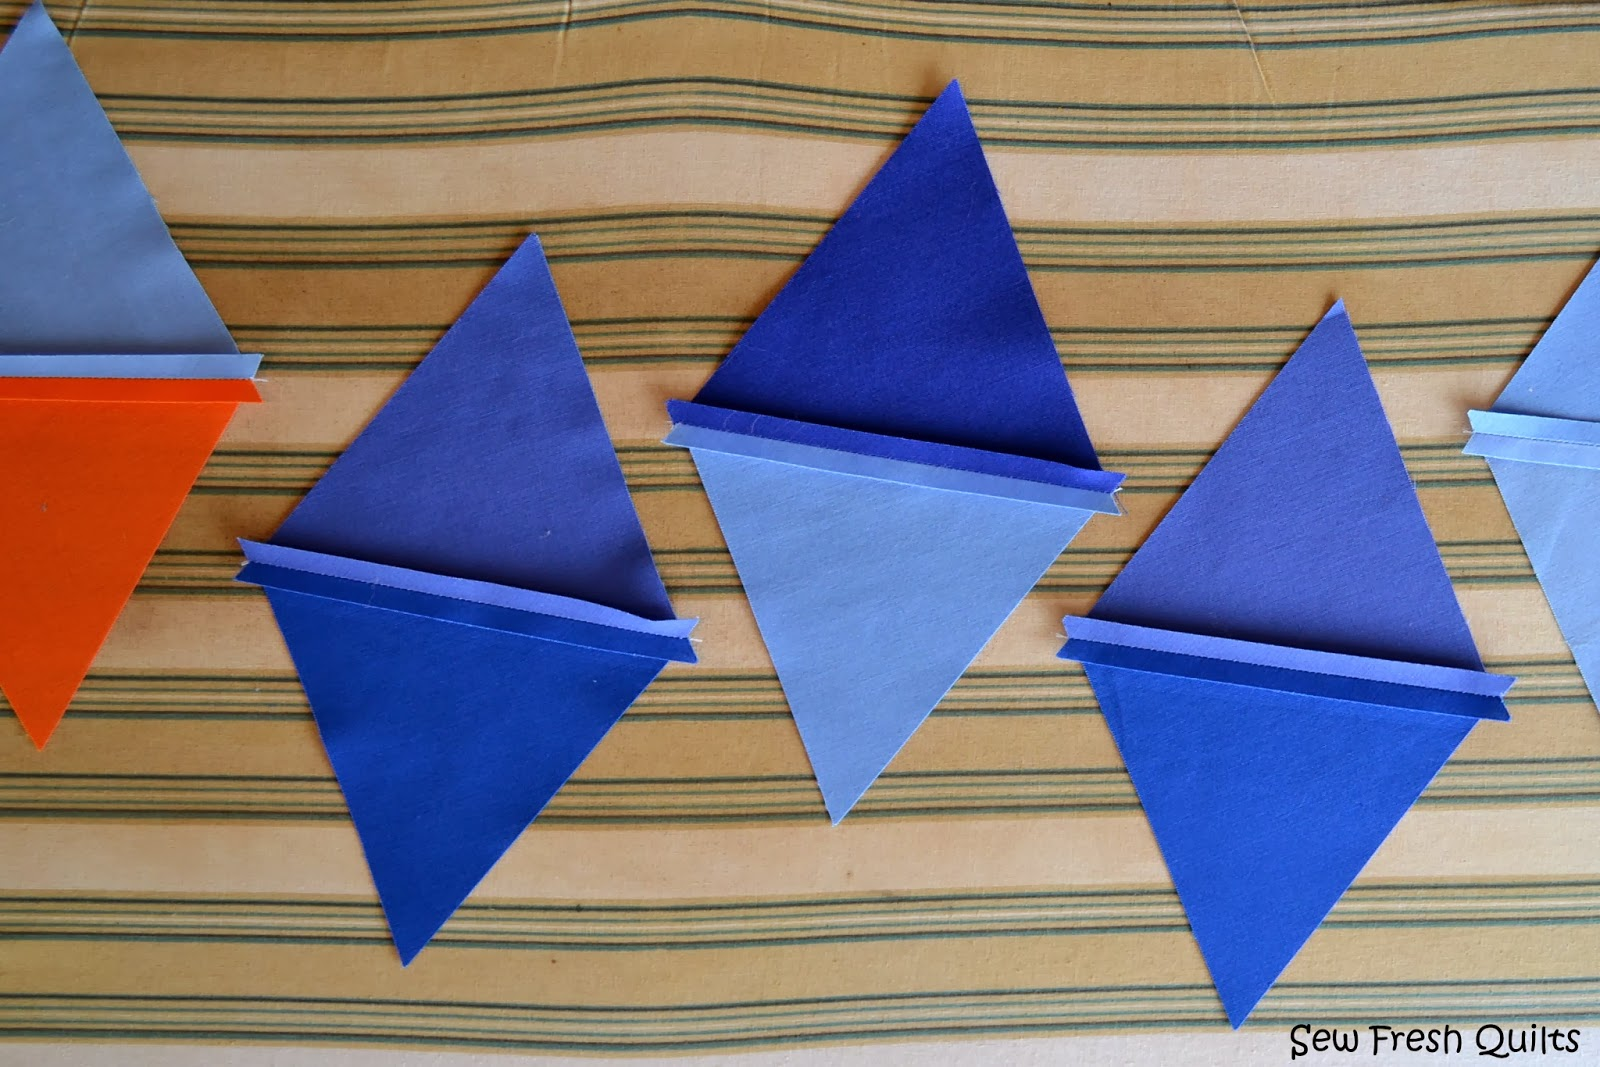 Sew Fresh Quilts: Equilateral Triangle Quilt Tutorial - Part 2 : equilateral triangle quilt tutorial - Adamdwight.com